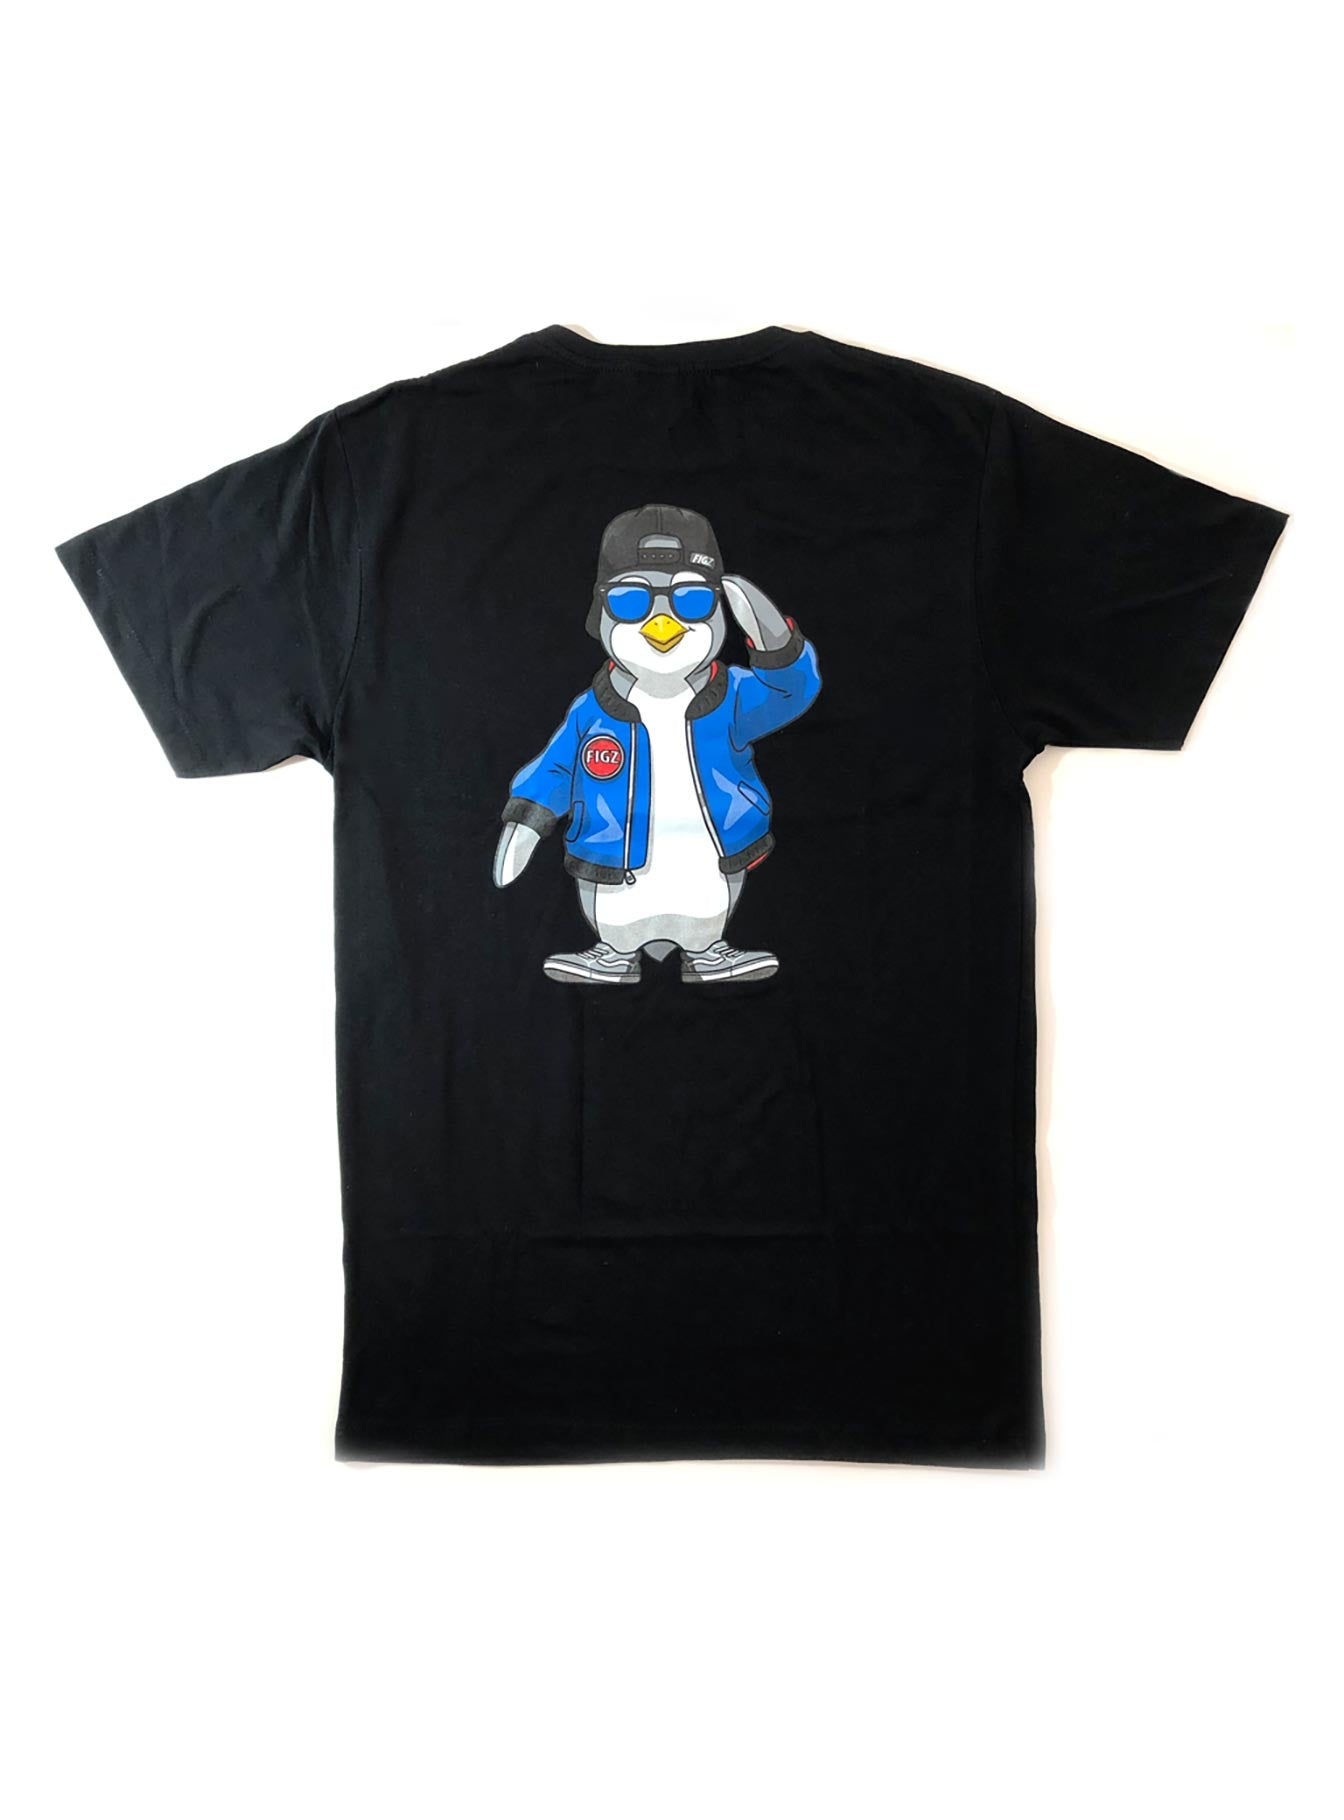 Figz Penguin | T-Shirt (Youth + Adult)